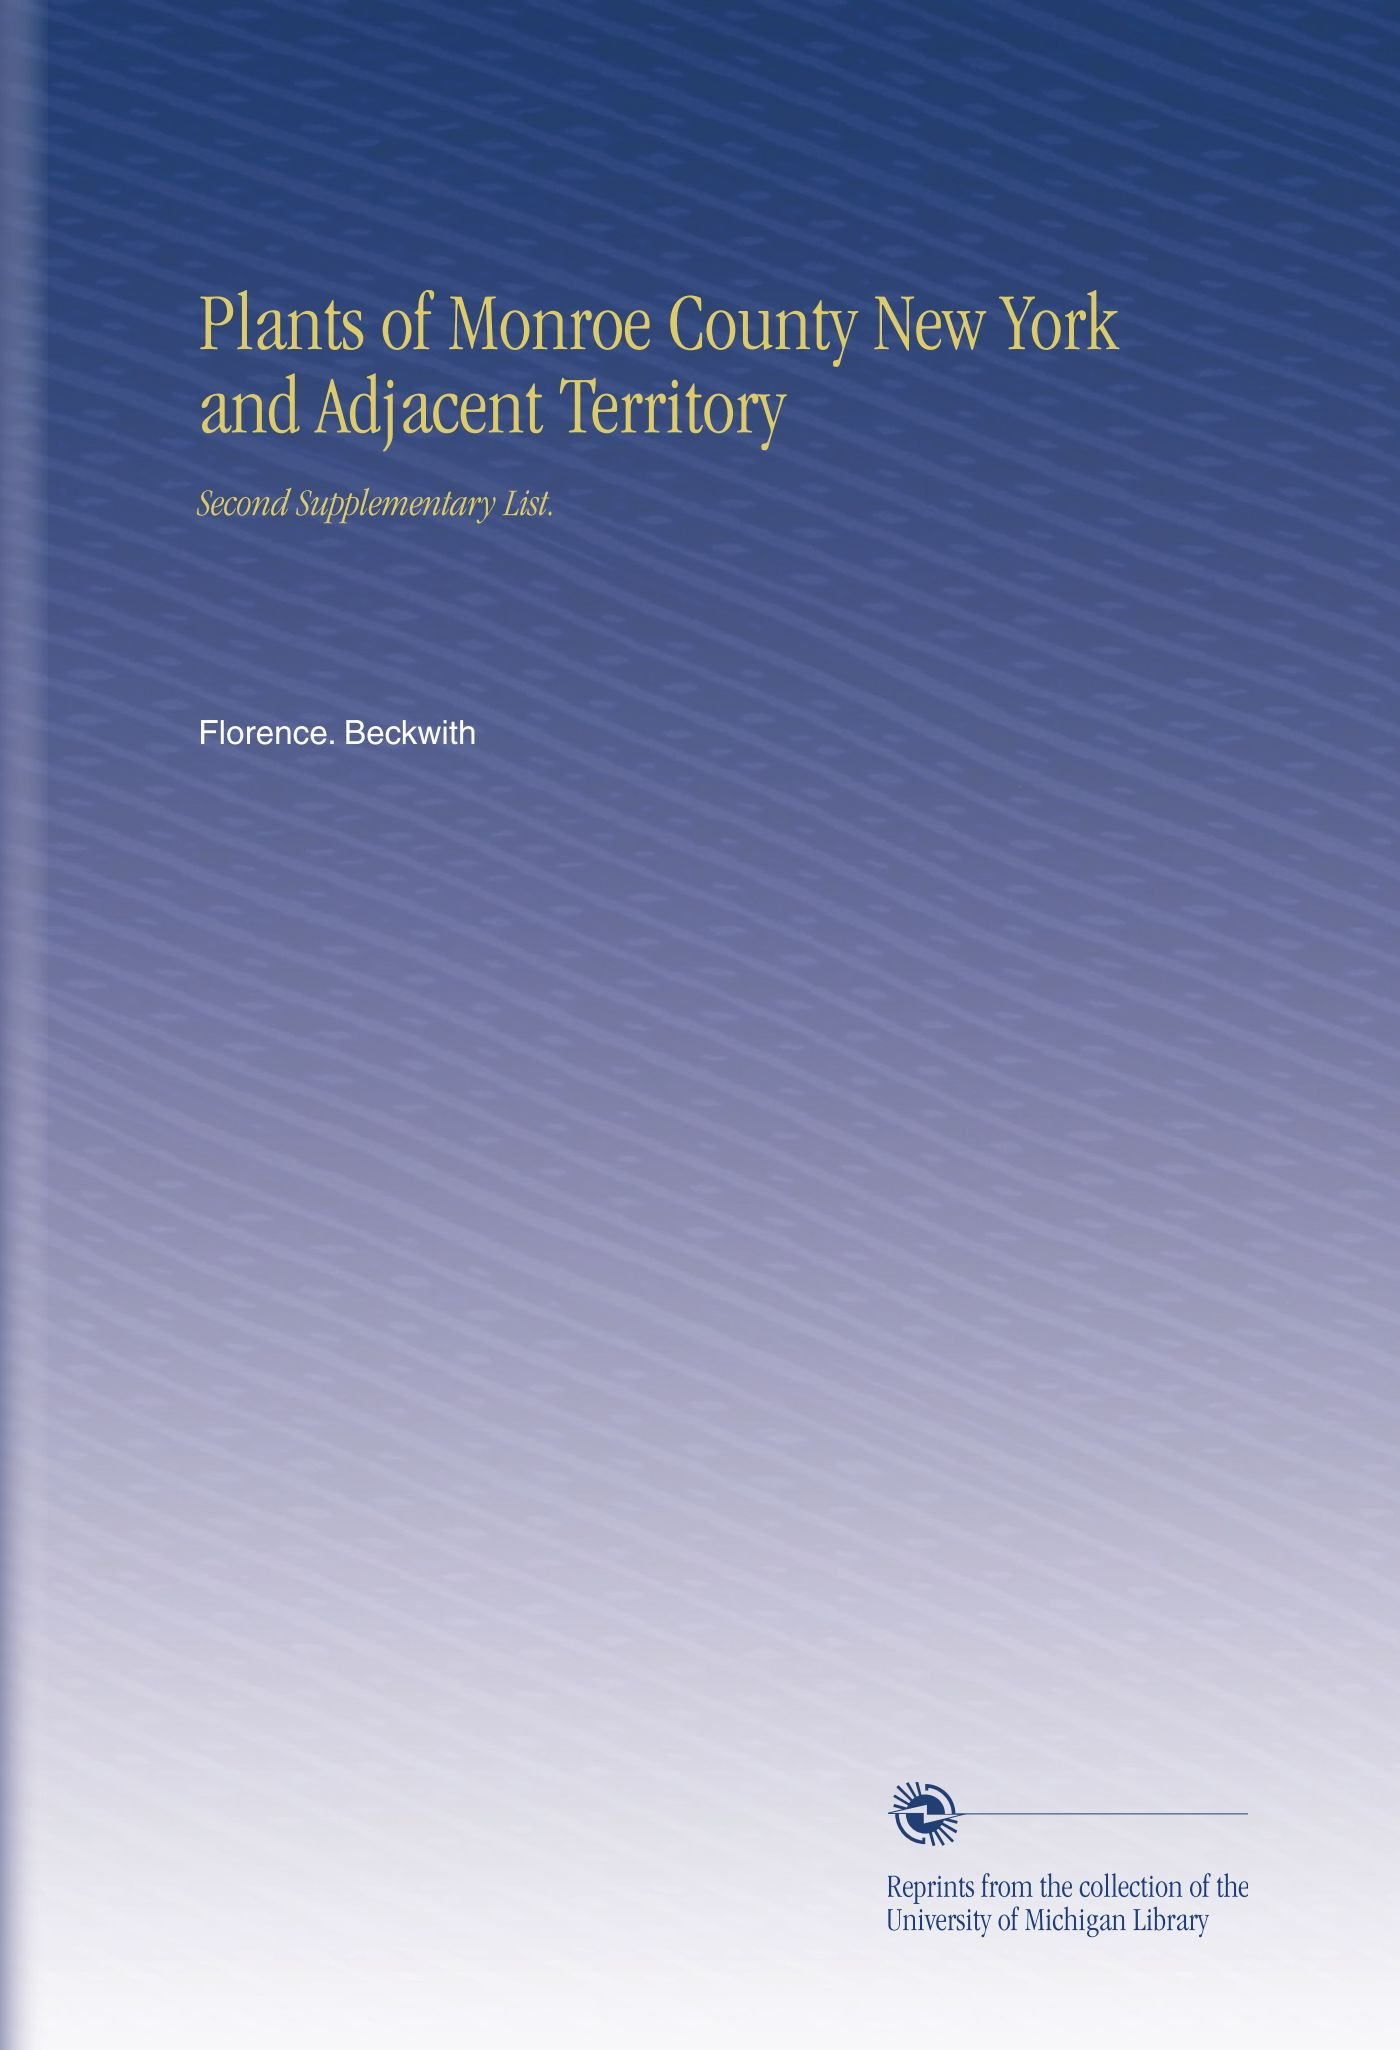 Download Plants of Monroe County New York and Adjacent Territory: Second Supplementary List. ebook